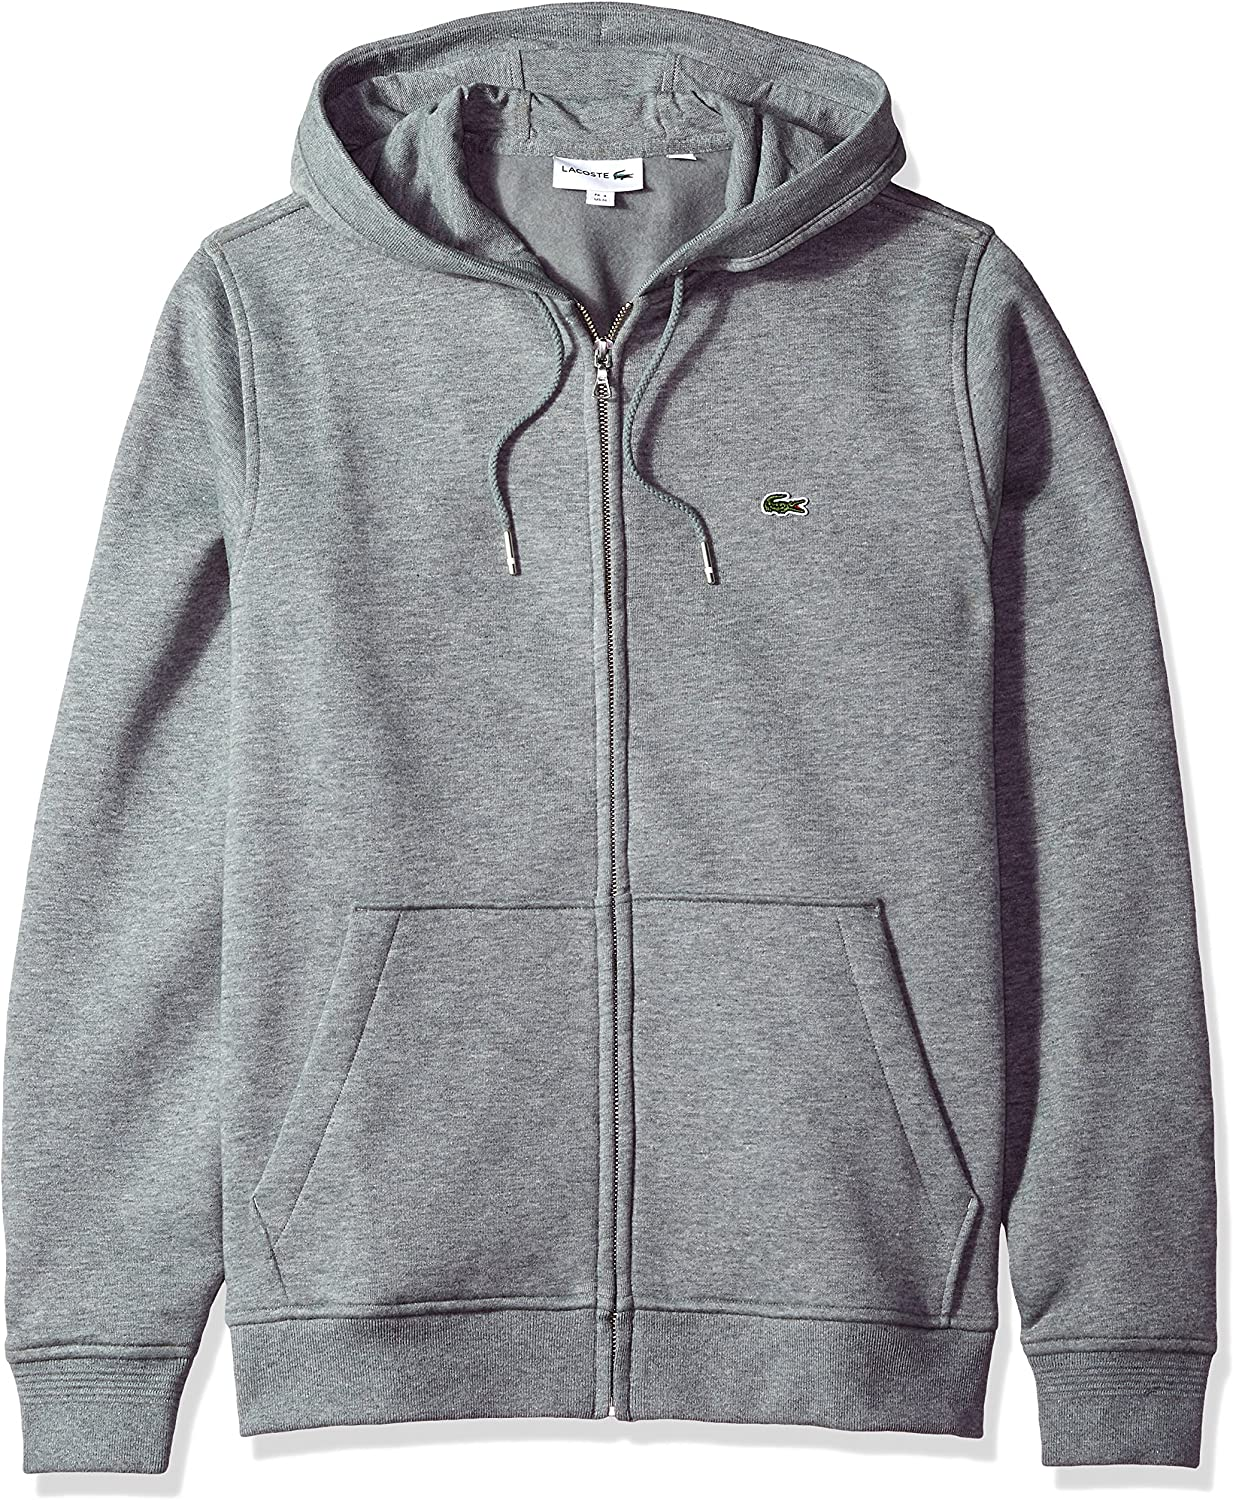 Lacoste Men's Long Sleeve Full Zip Hoodie Sweatshirt, SH3294